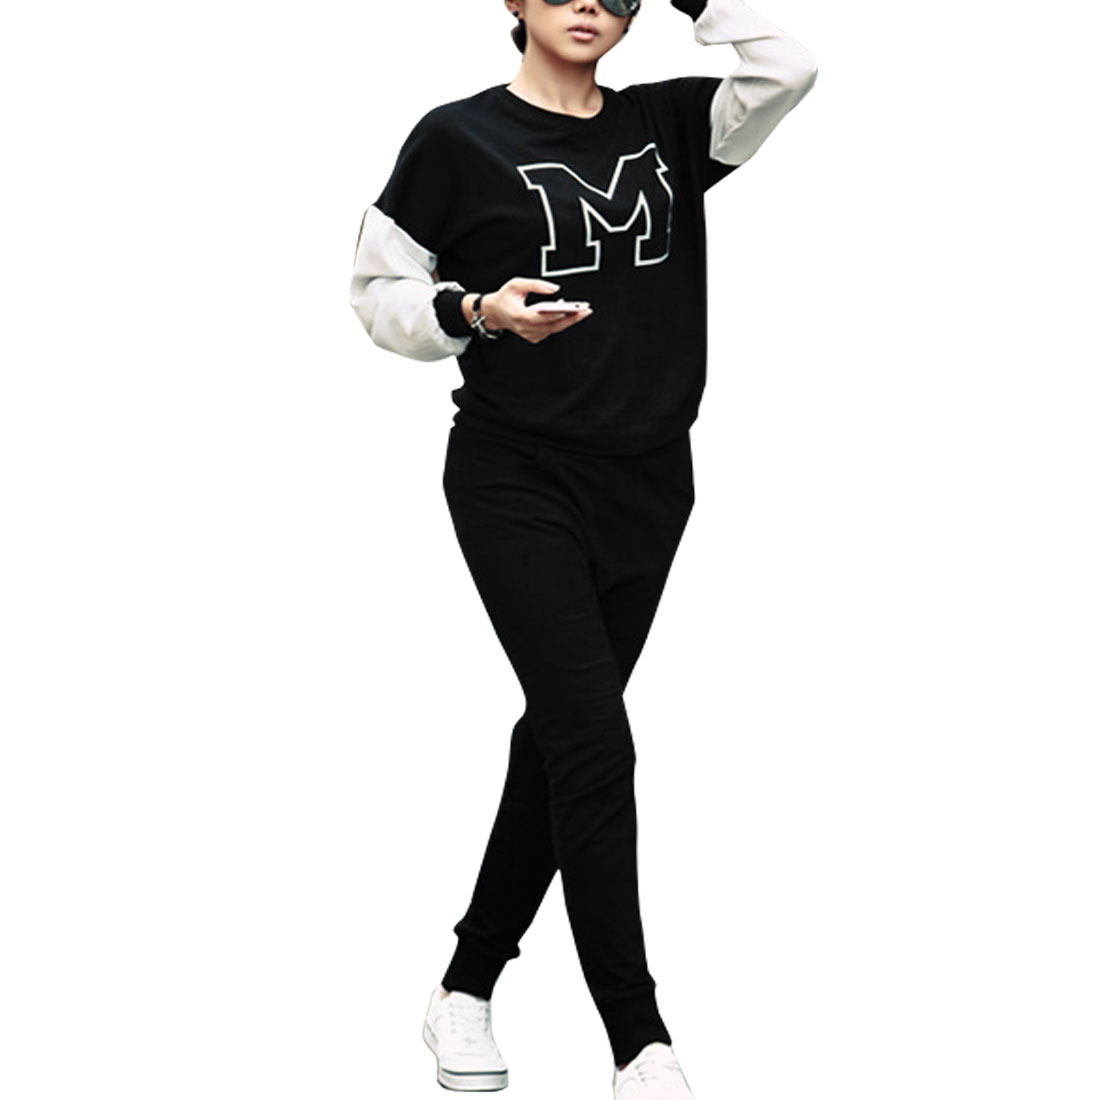 Woman Black Round Neck Letter Print Sweatshirt Top XS + Elastic Waist Pants